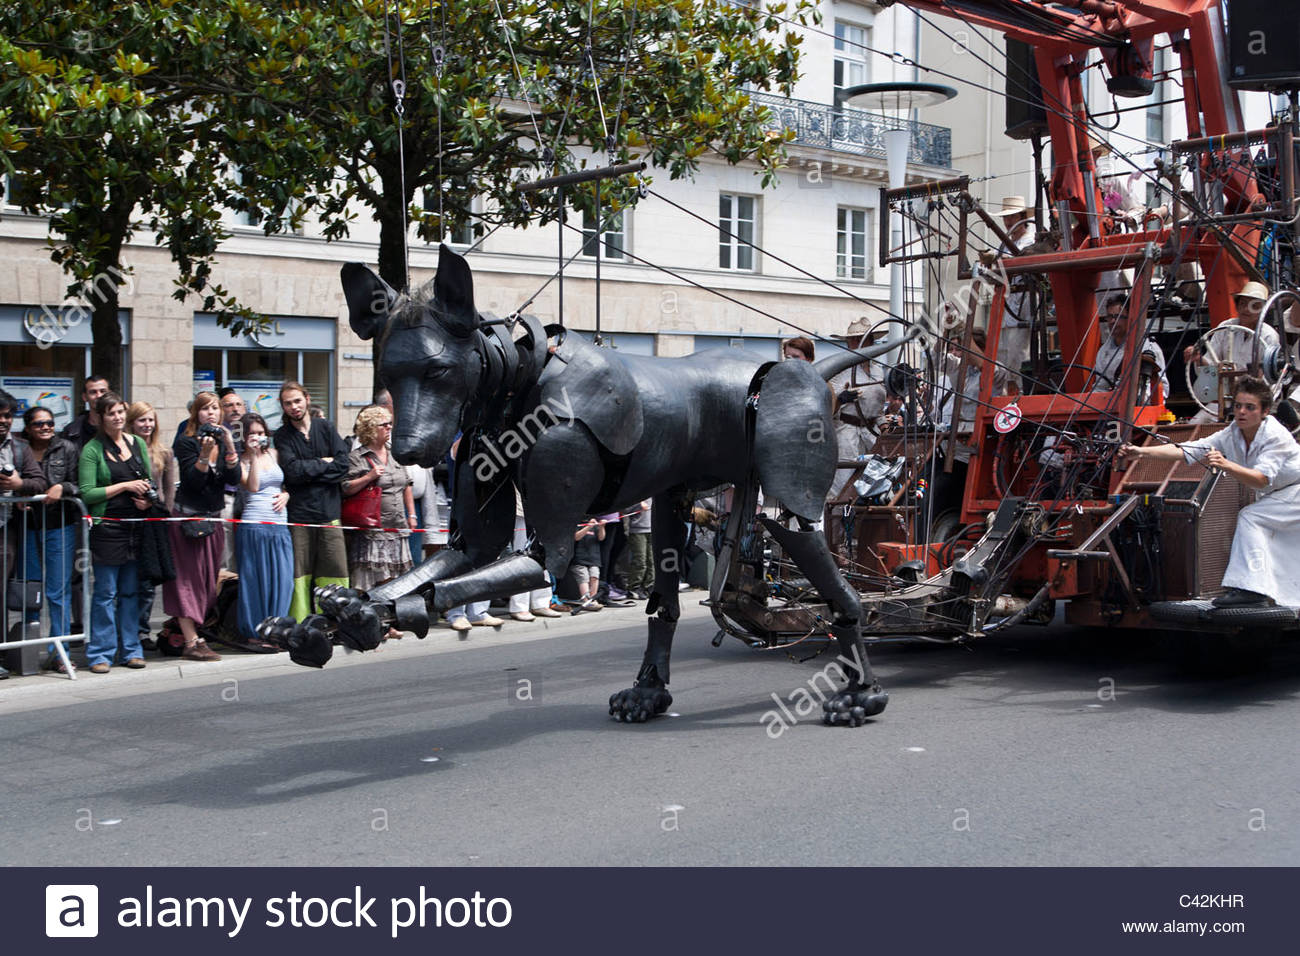 Xolo the dog, a giant marionette by Royal de Luxe, runs through the streets in Nantes, France, May 27, 2011 - Stock Image